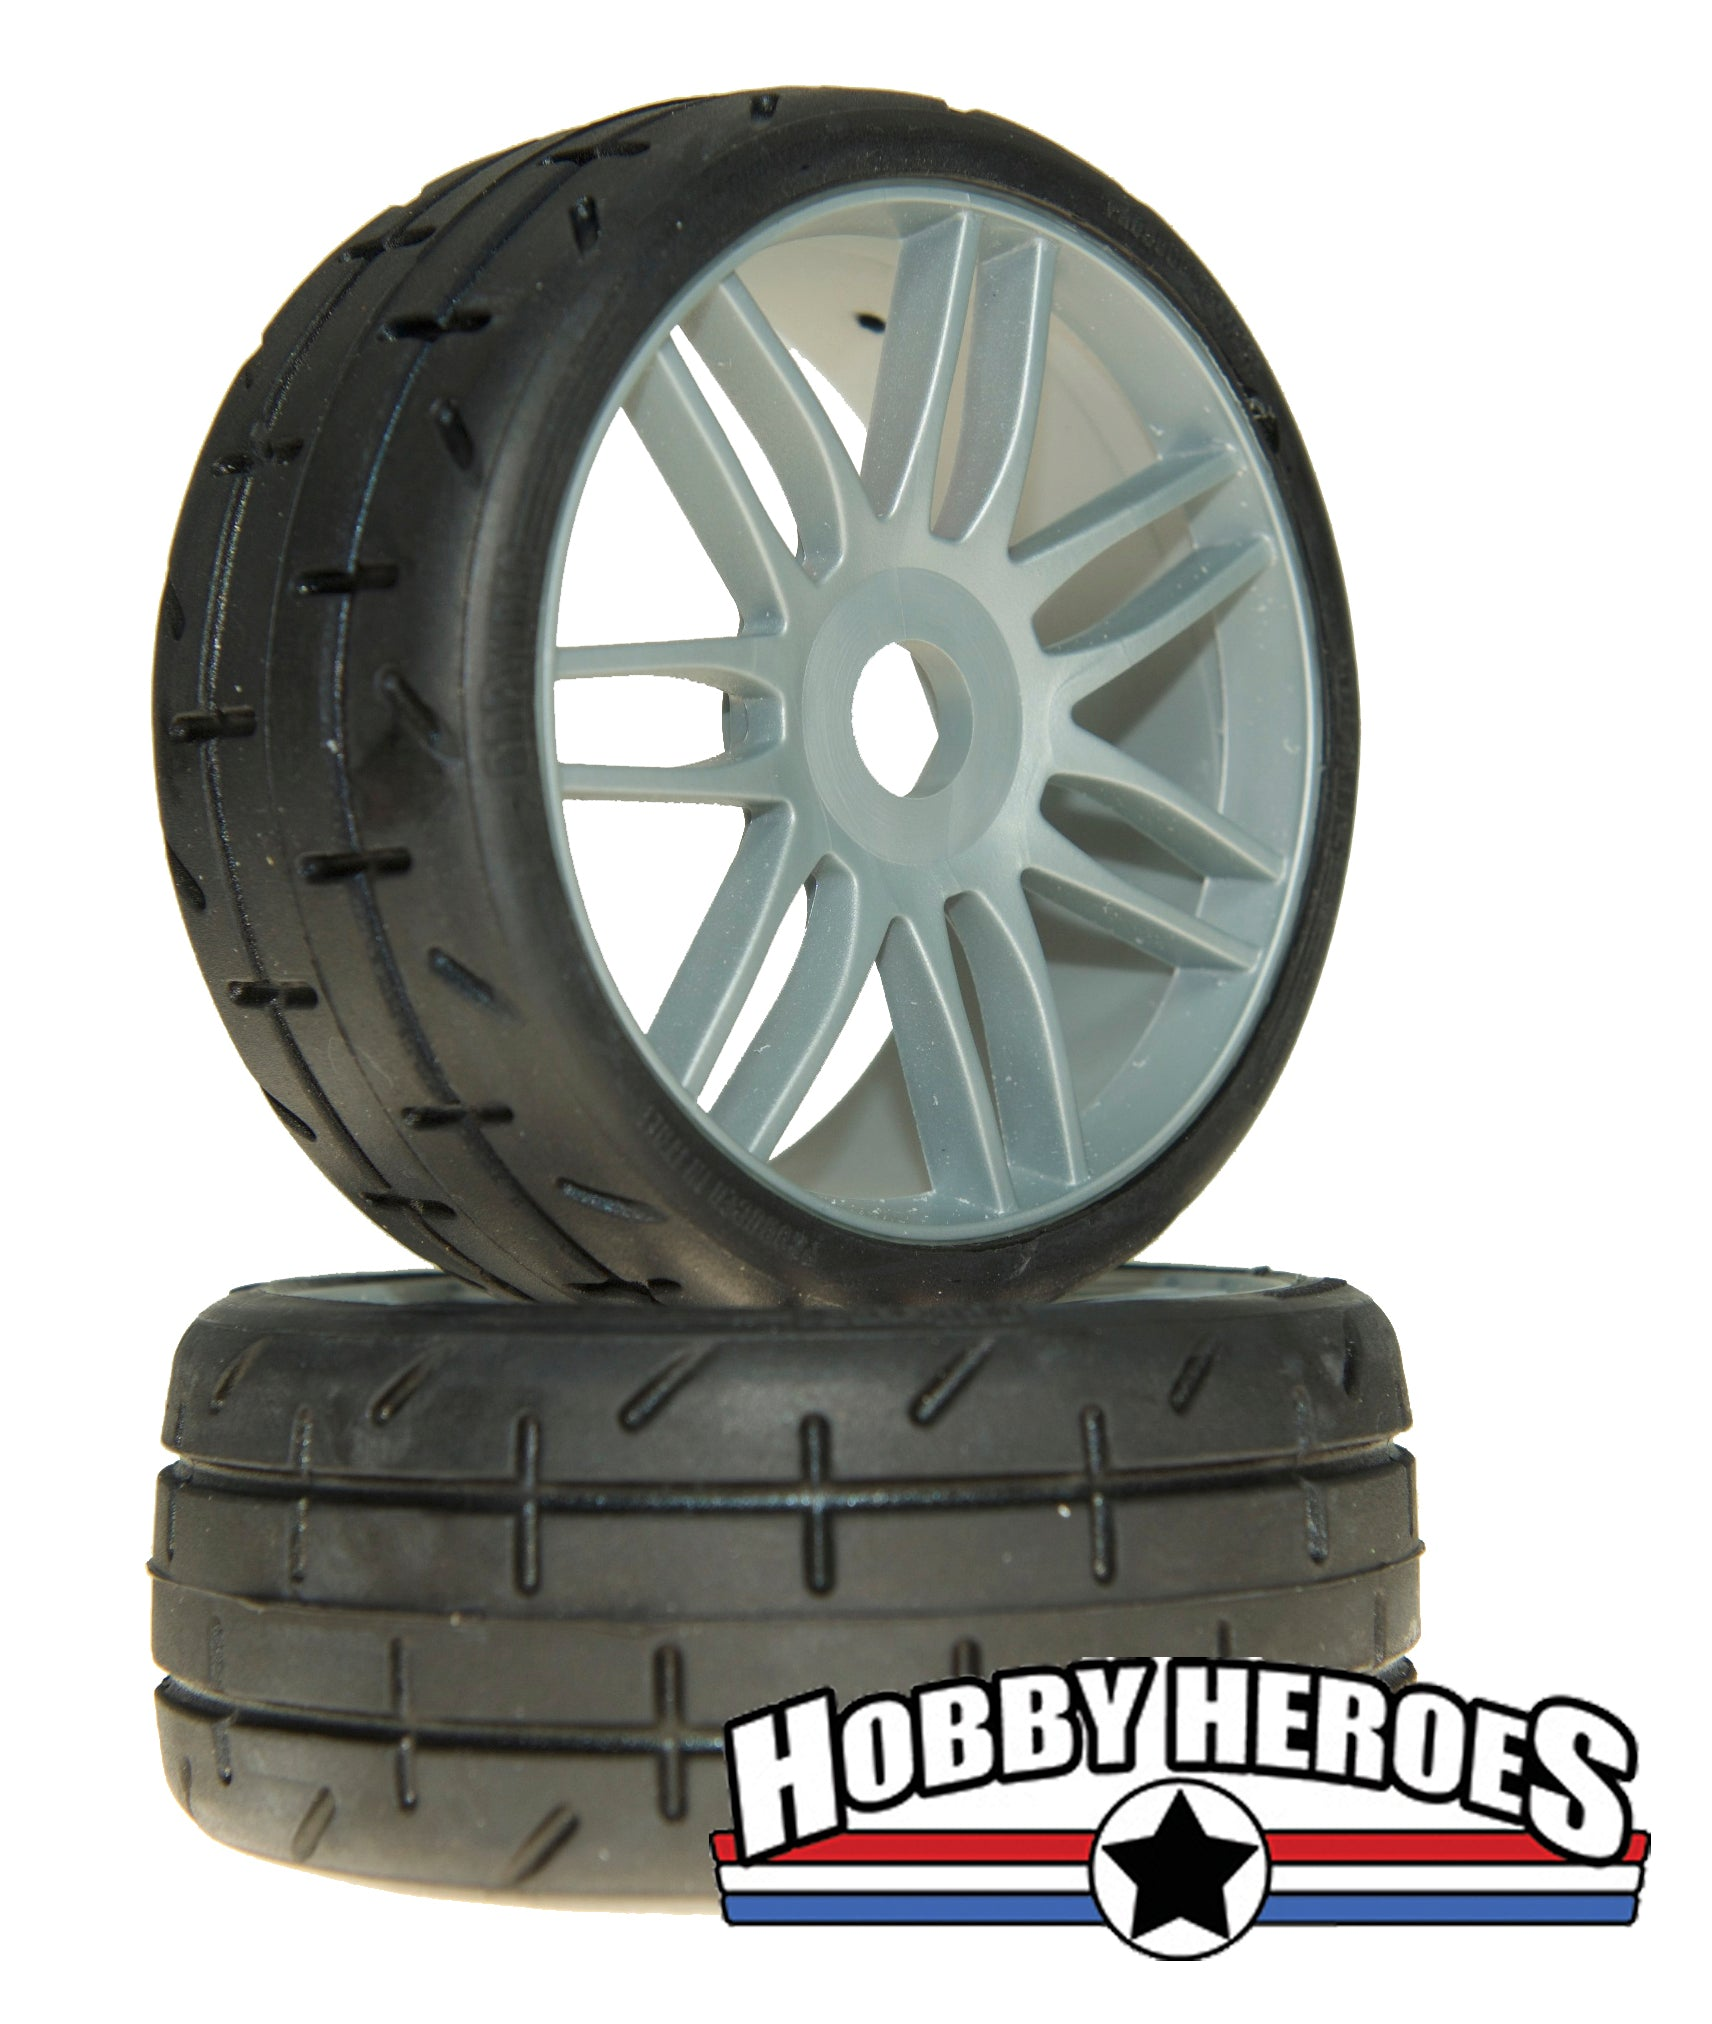 GRP GTK01-S7 1:8 GT Treaded S7 Medium Hard Silver Spoked Belted Rubber Tires